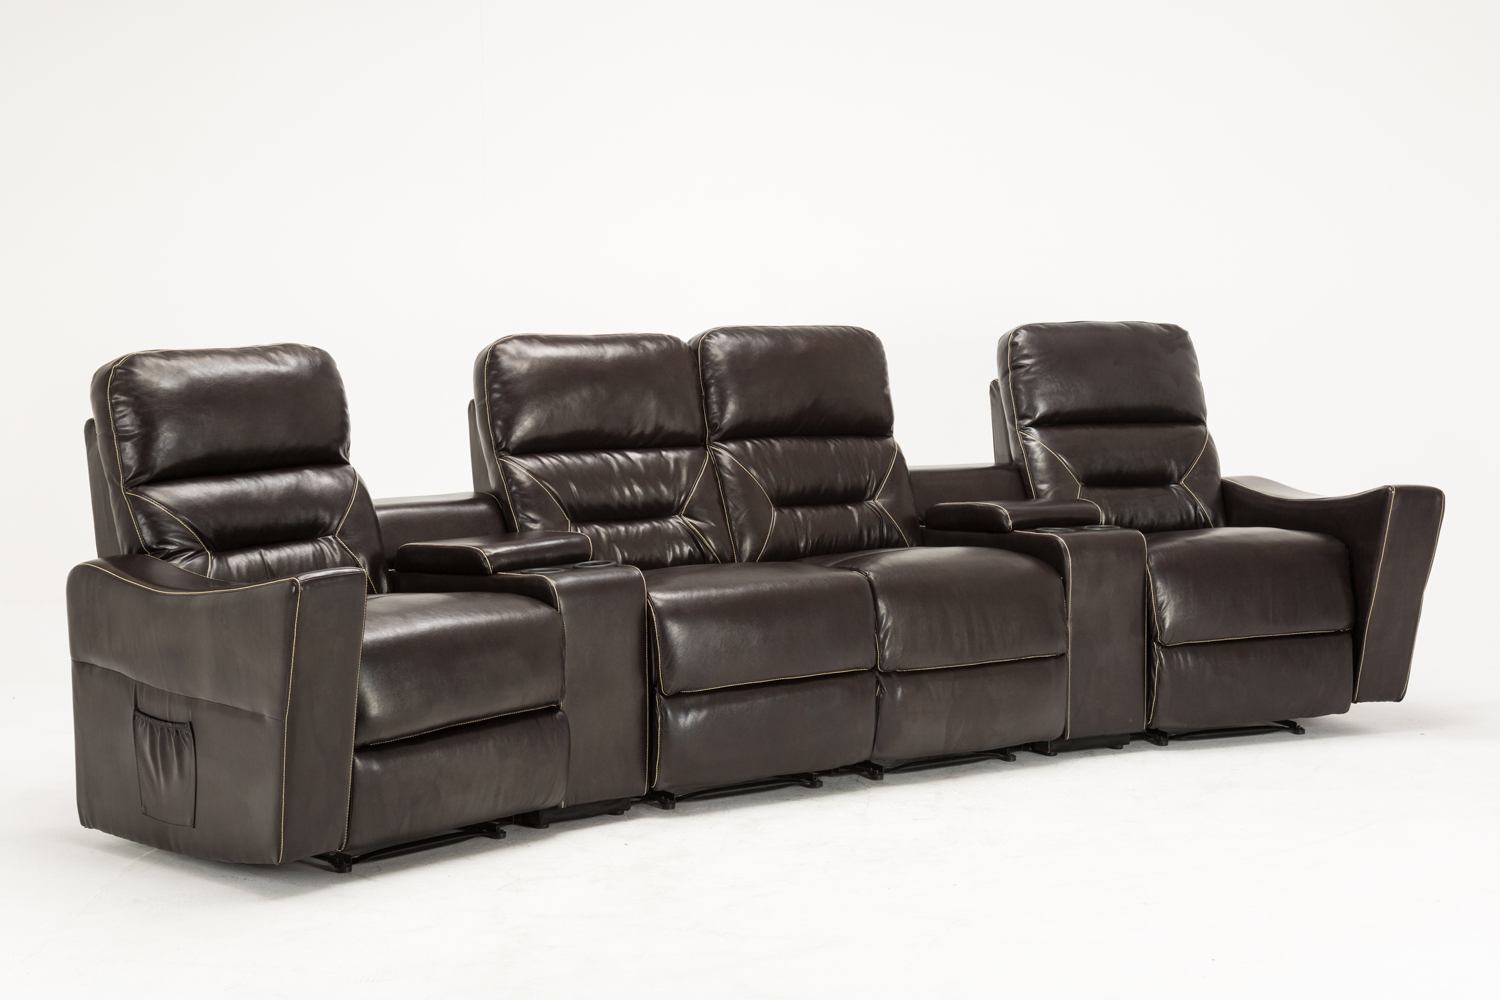 Mcombo 4 seat leather home theater recliner media sofa w cup holder 7095 brown ebay Loveseat with cup holders